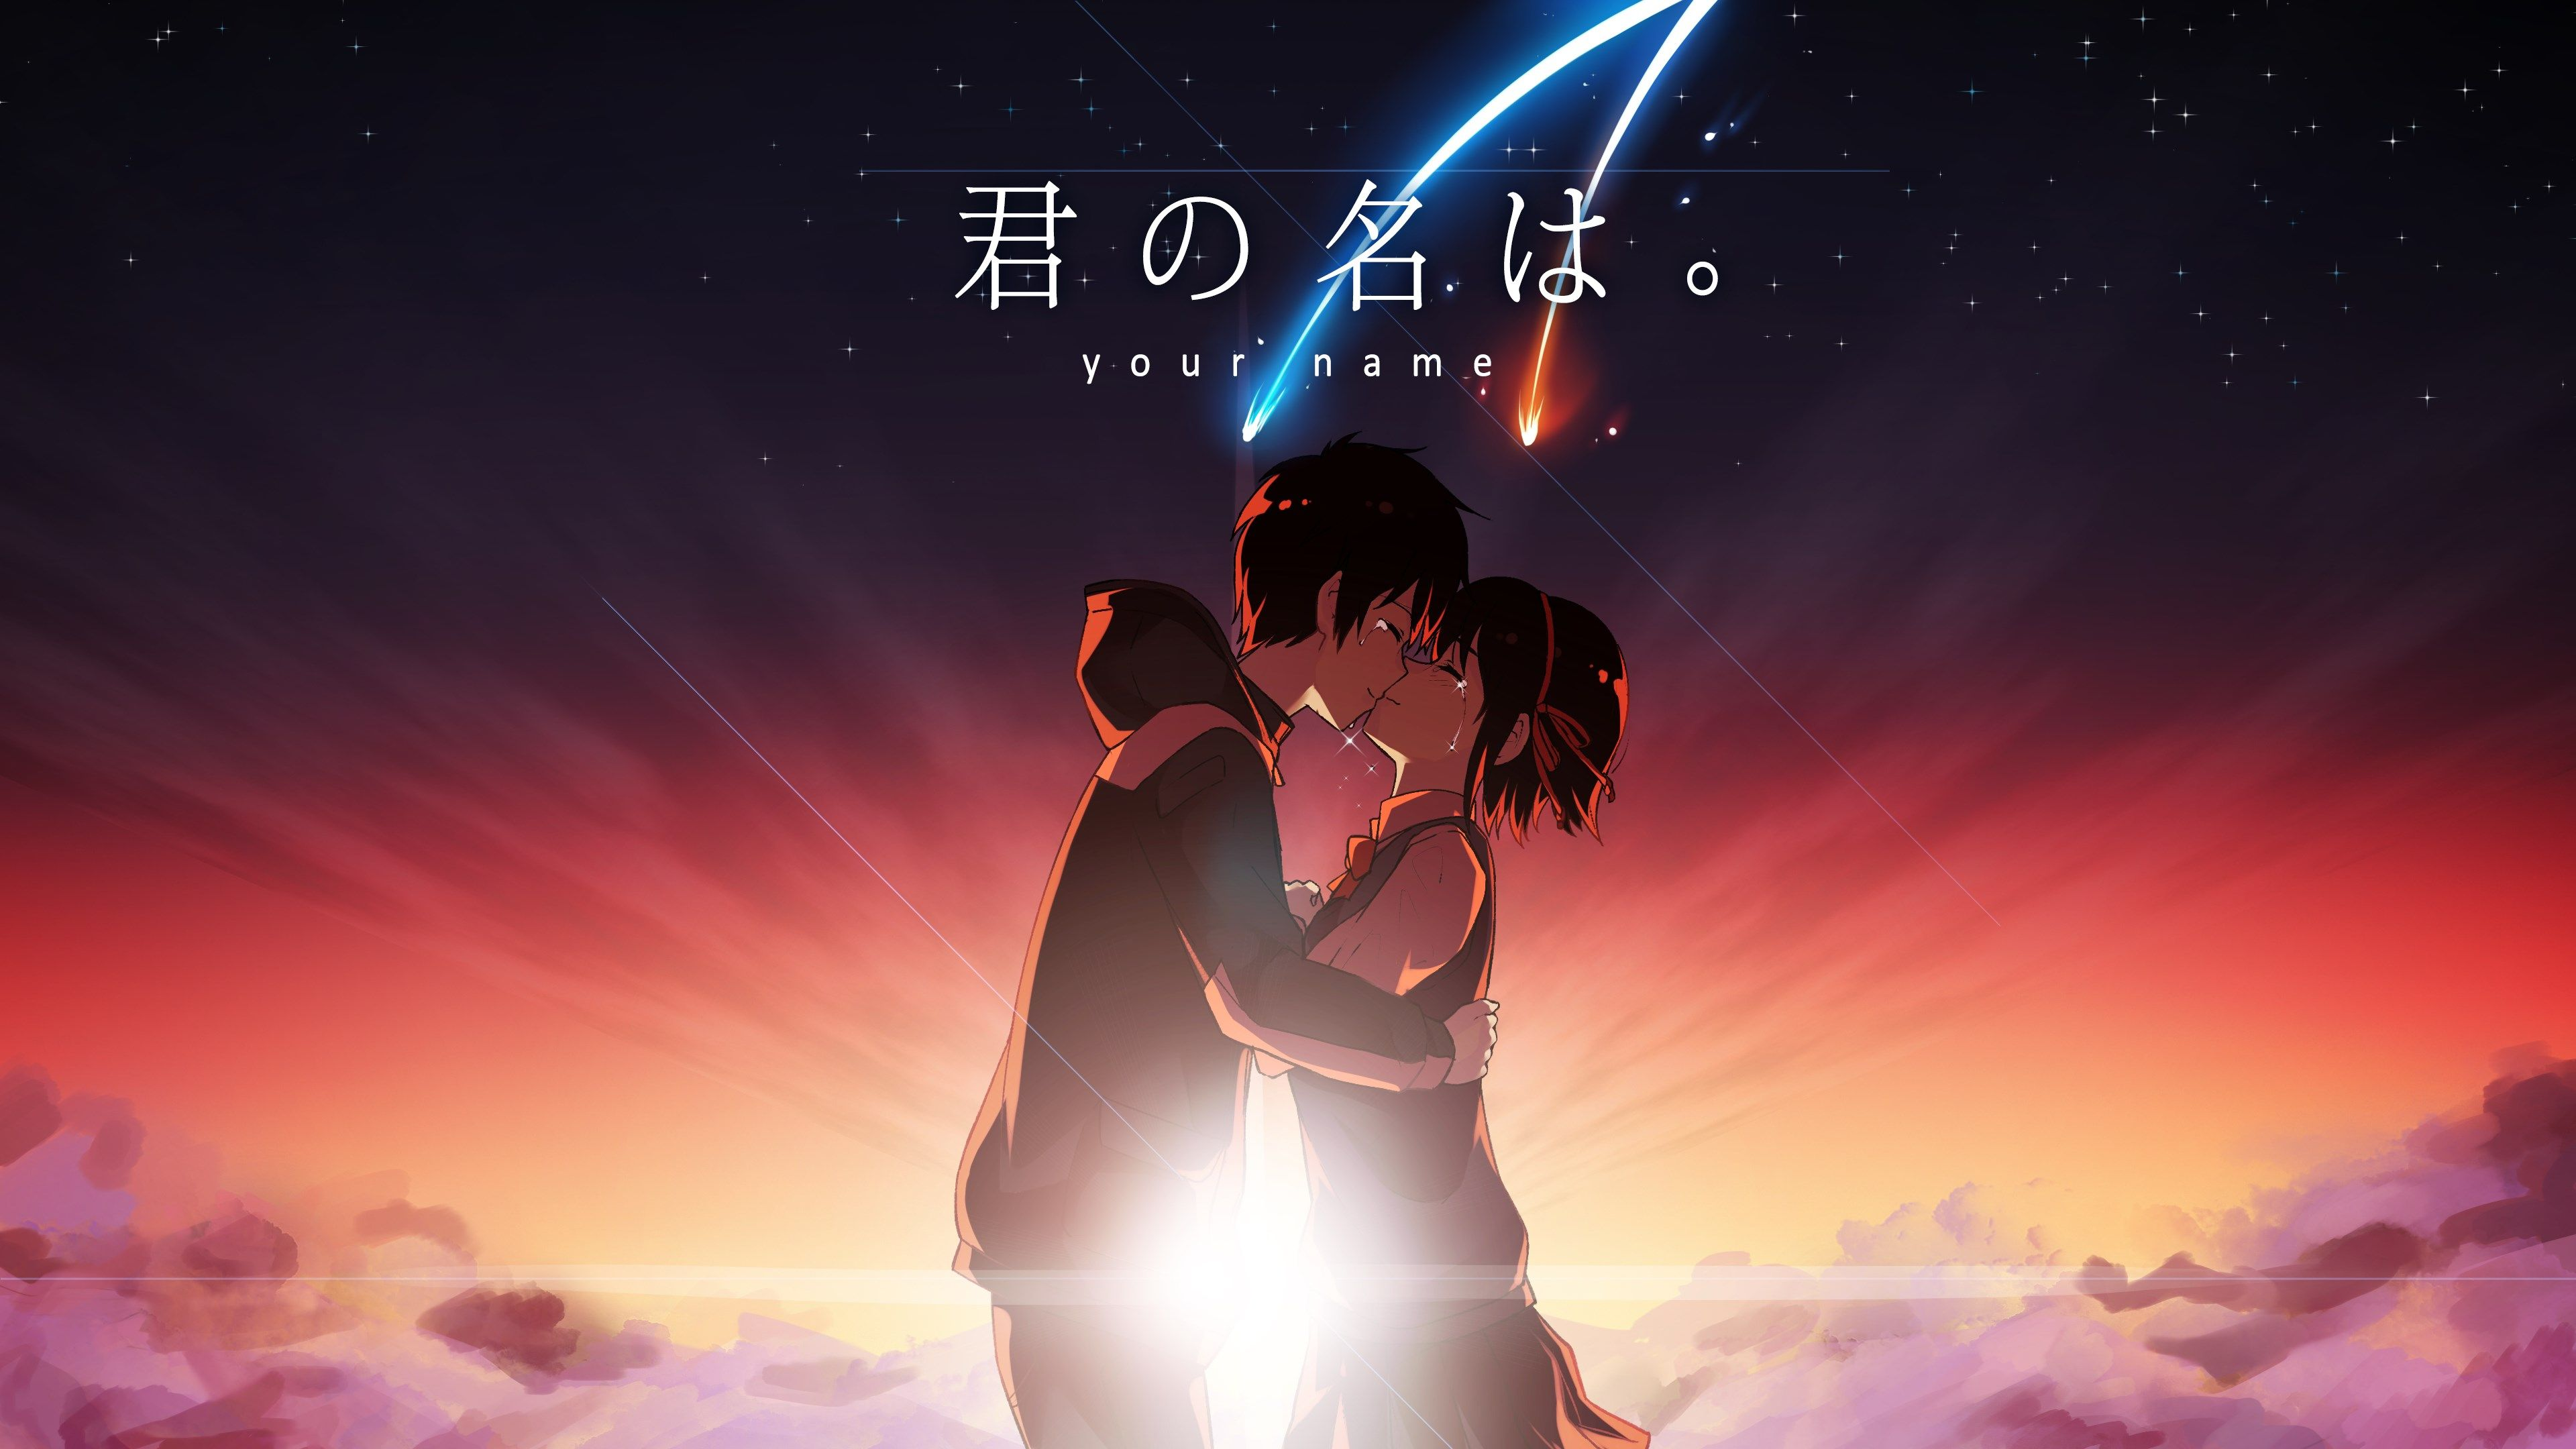 Your Name 4k Wallpaper Posted By Ryan Peltier